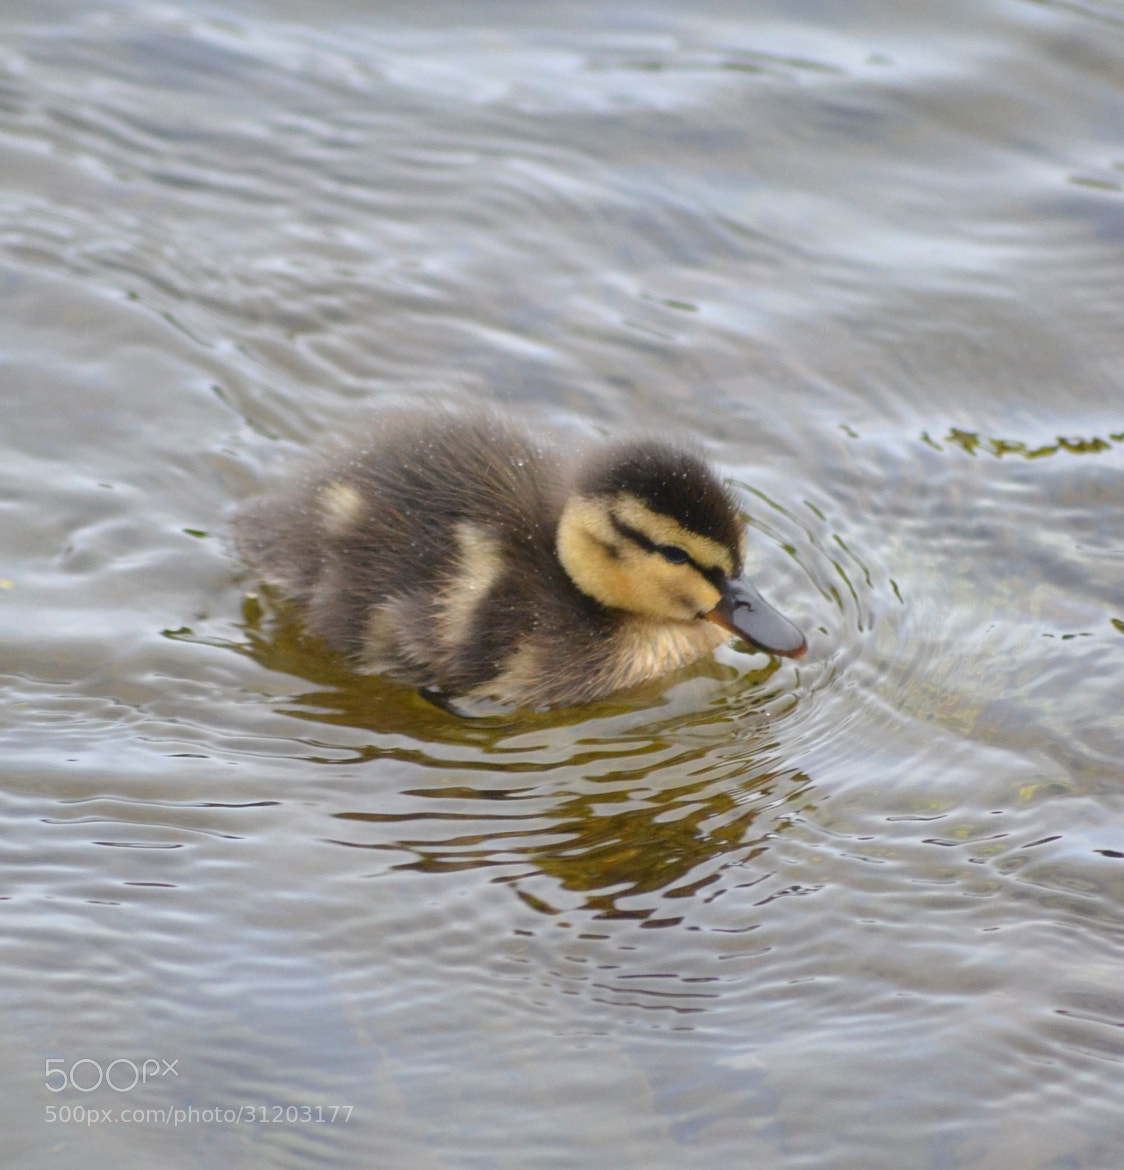 Photograph Duckling by Heather Aplin on 500px